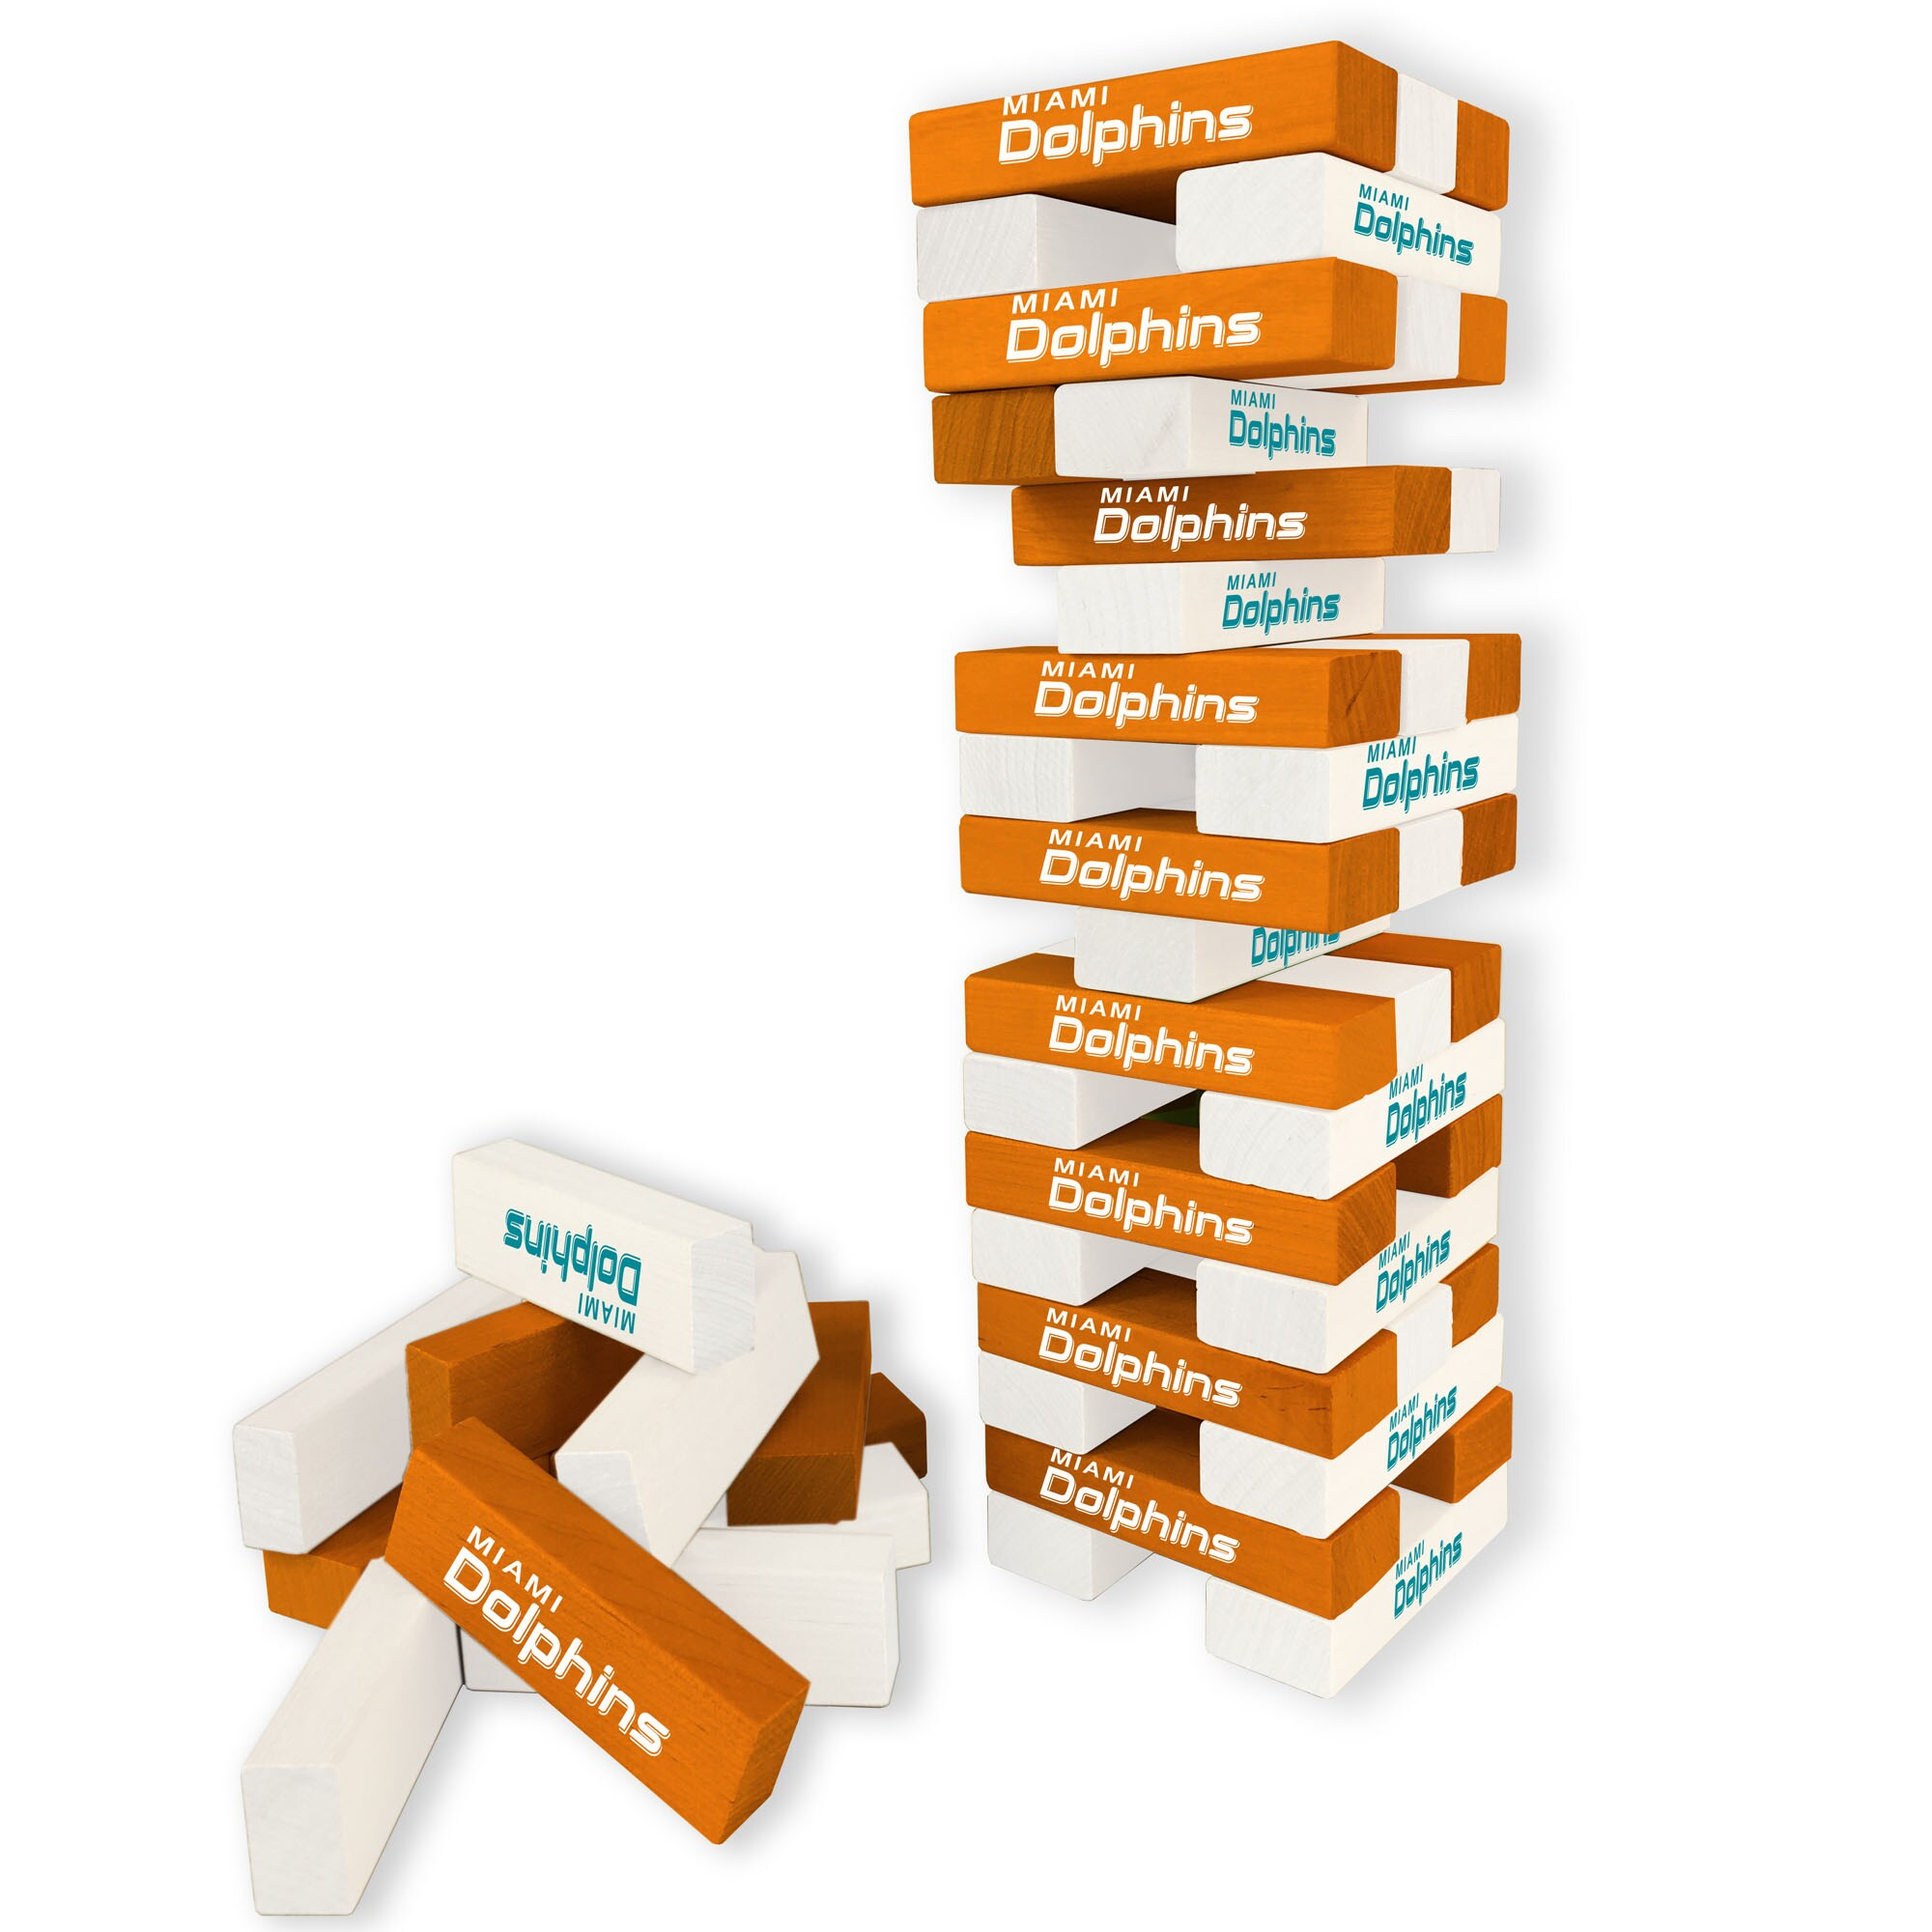 Miami Dolphins Wooden Table Top Stackers